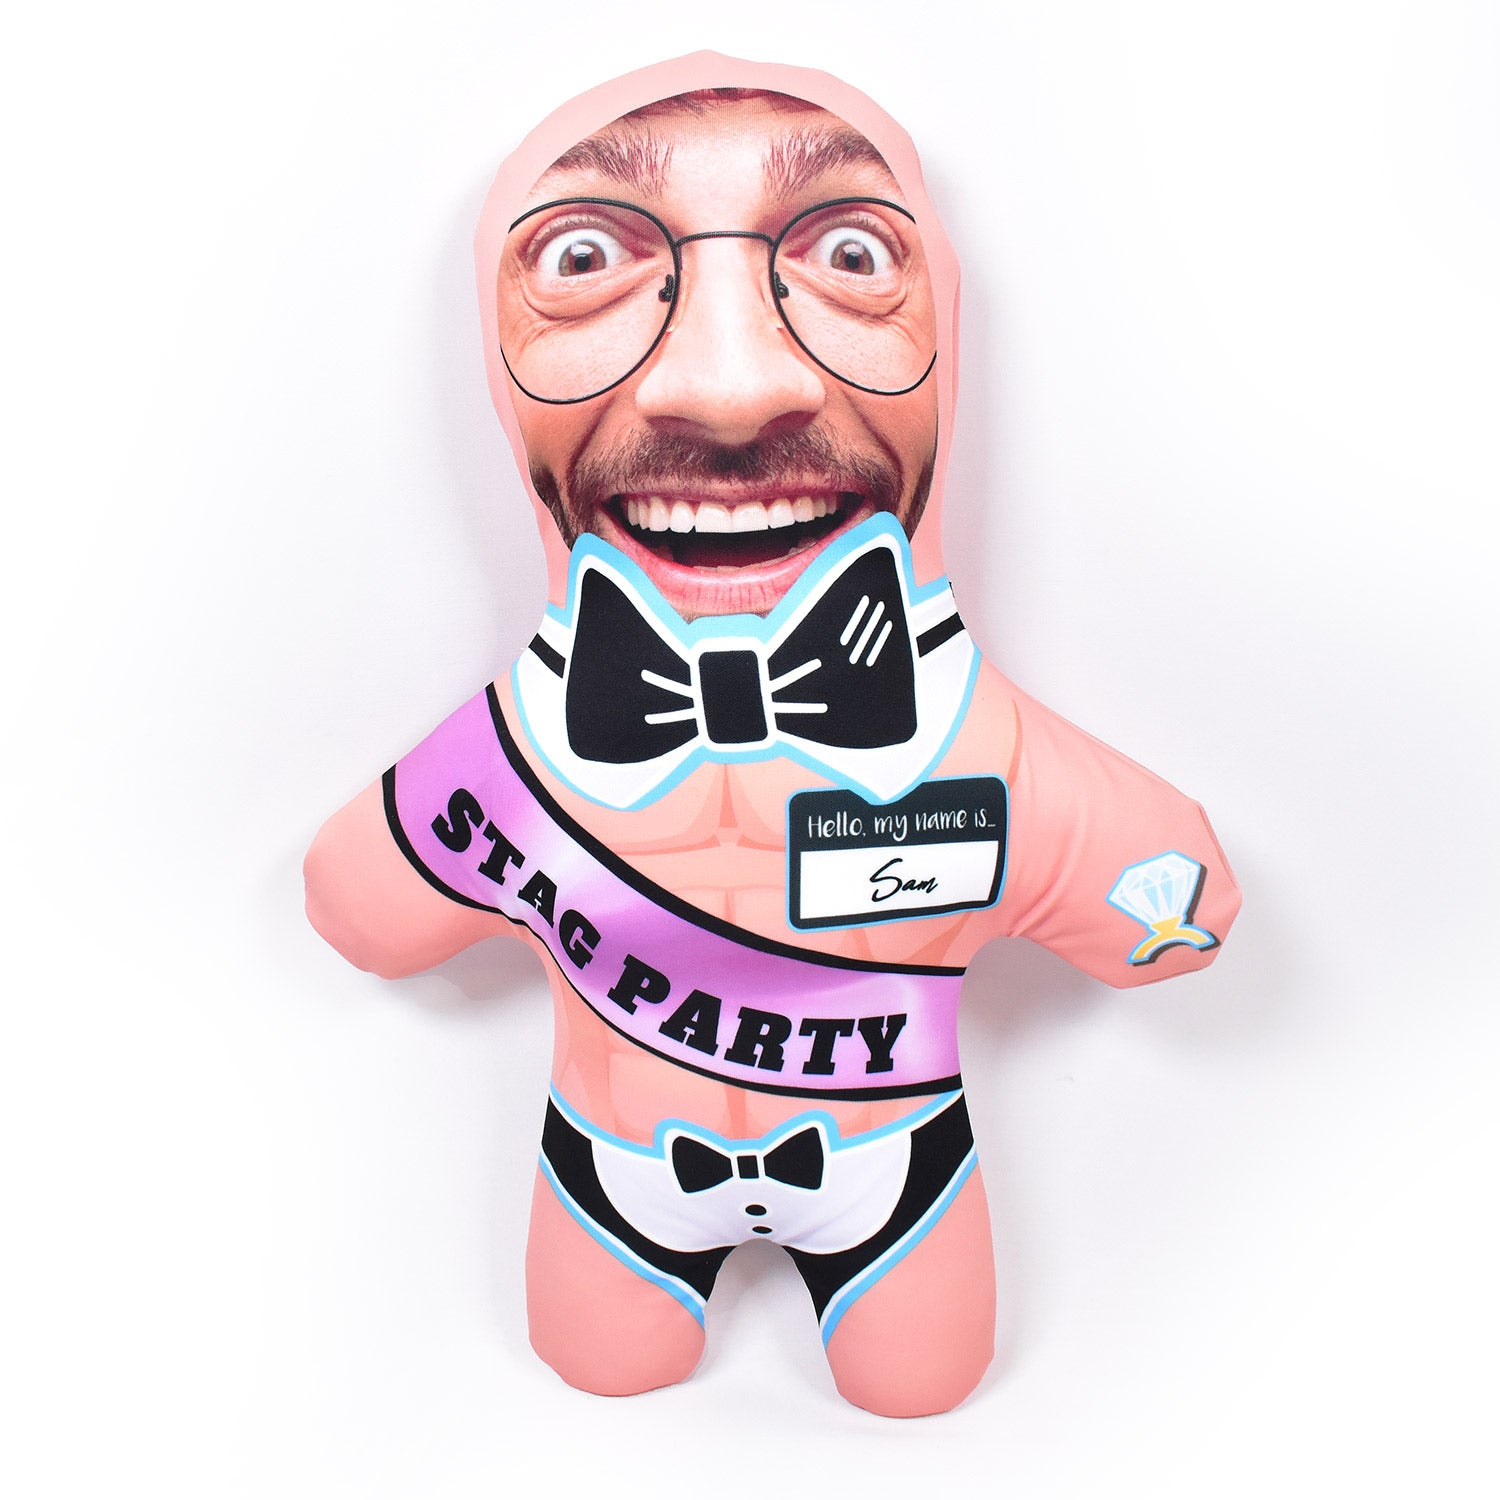 Stag Party Butler - Pick Your Skin Colour - Personalised Mini Me Doll